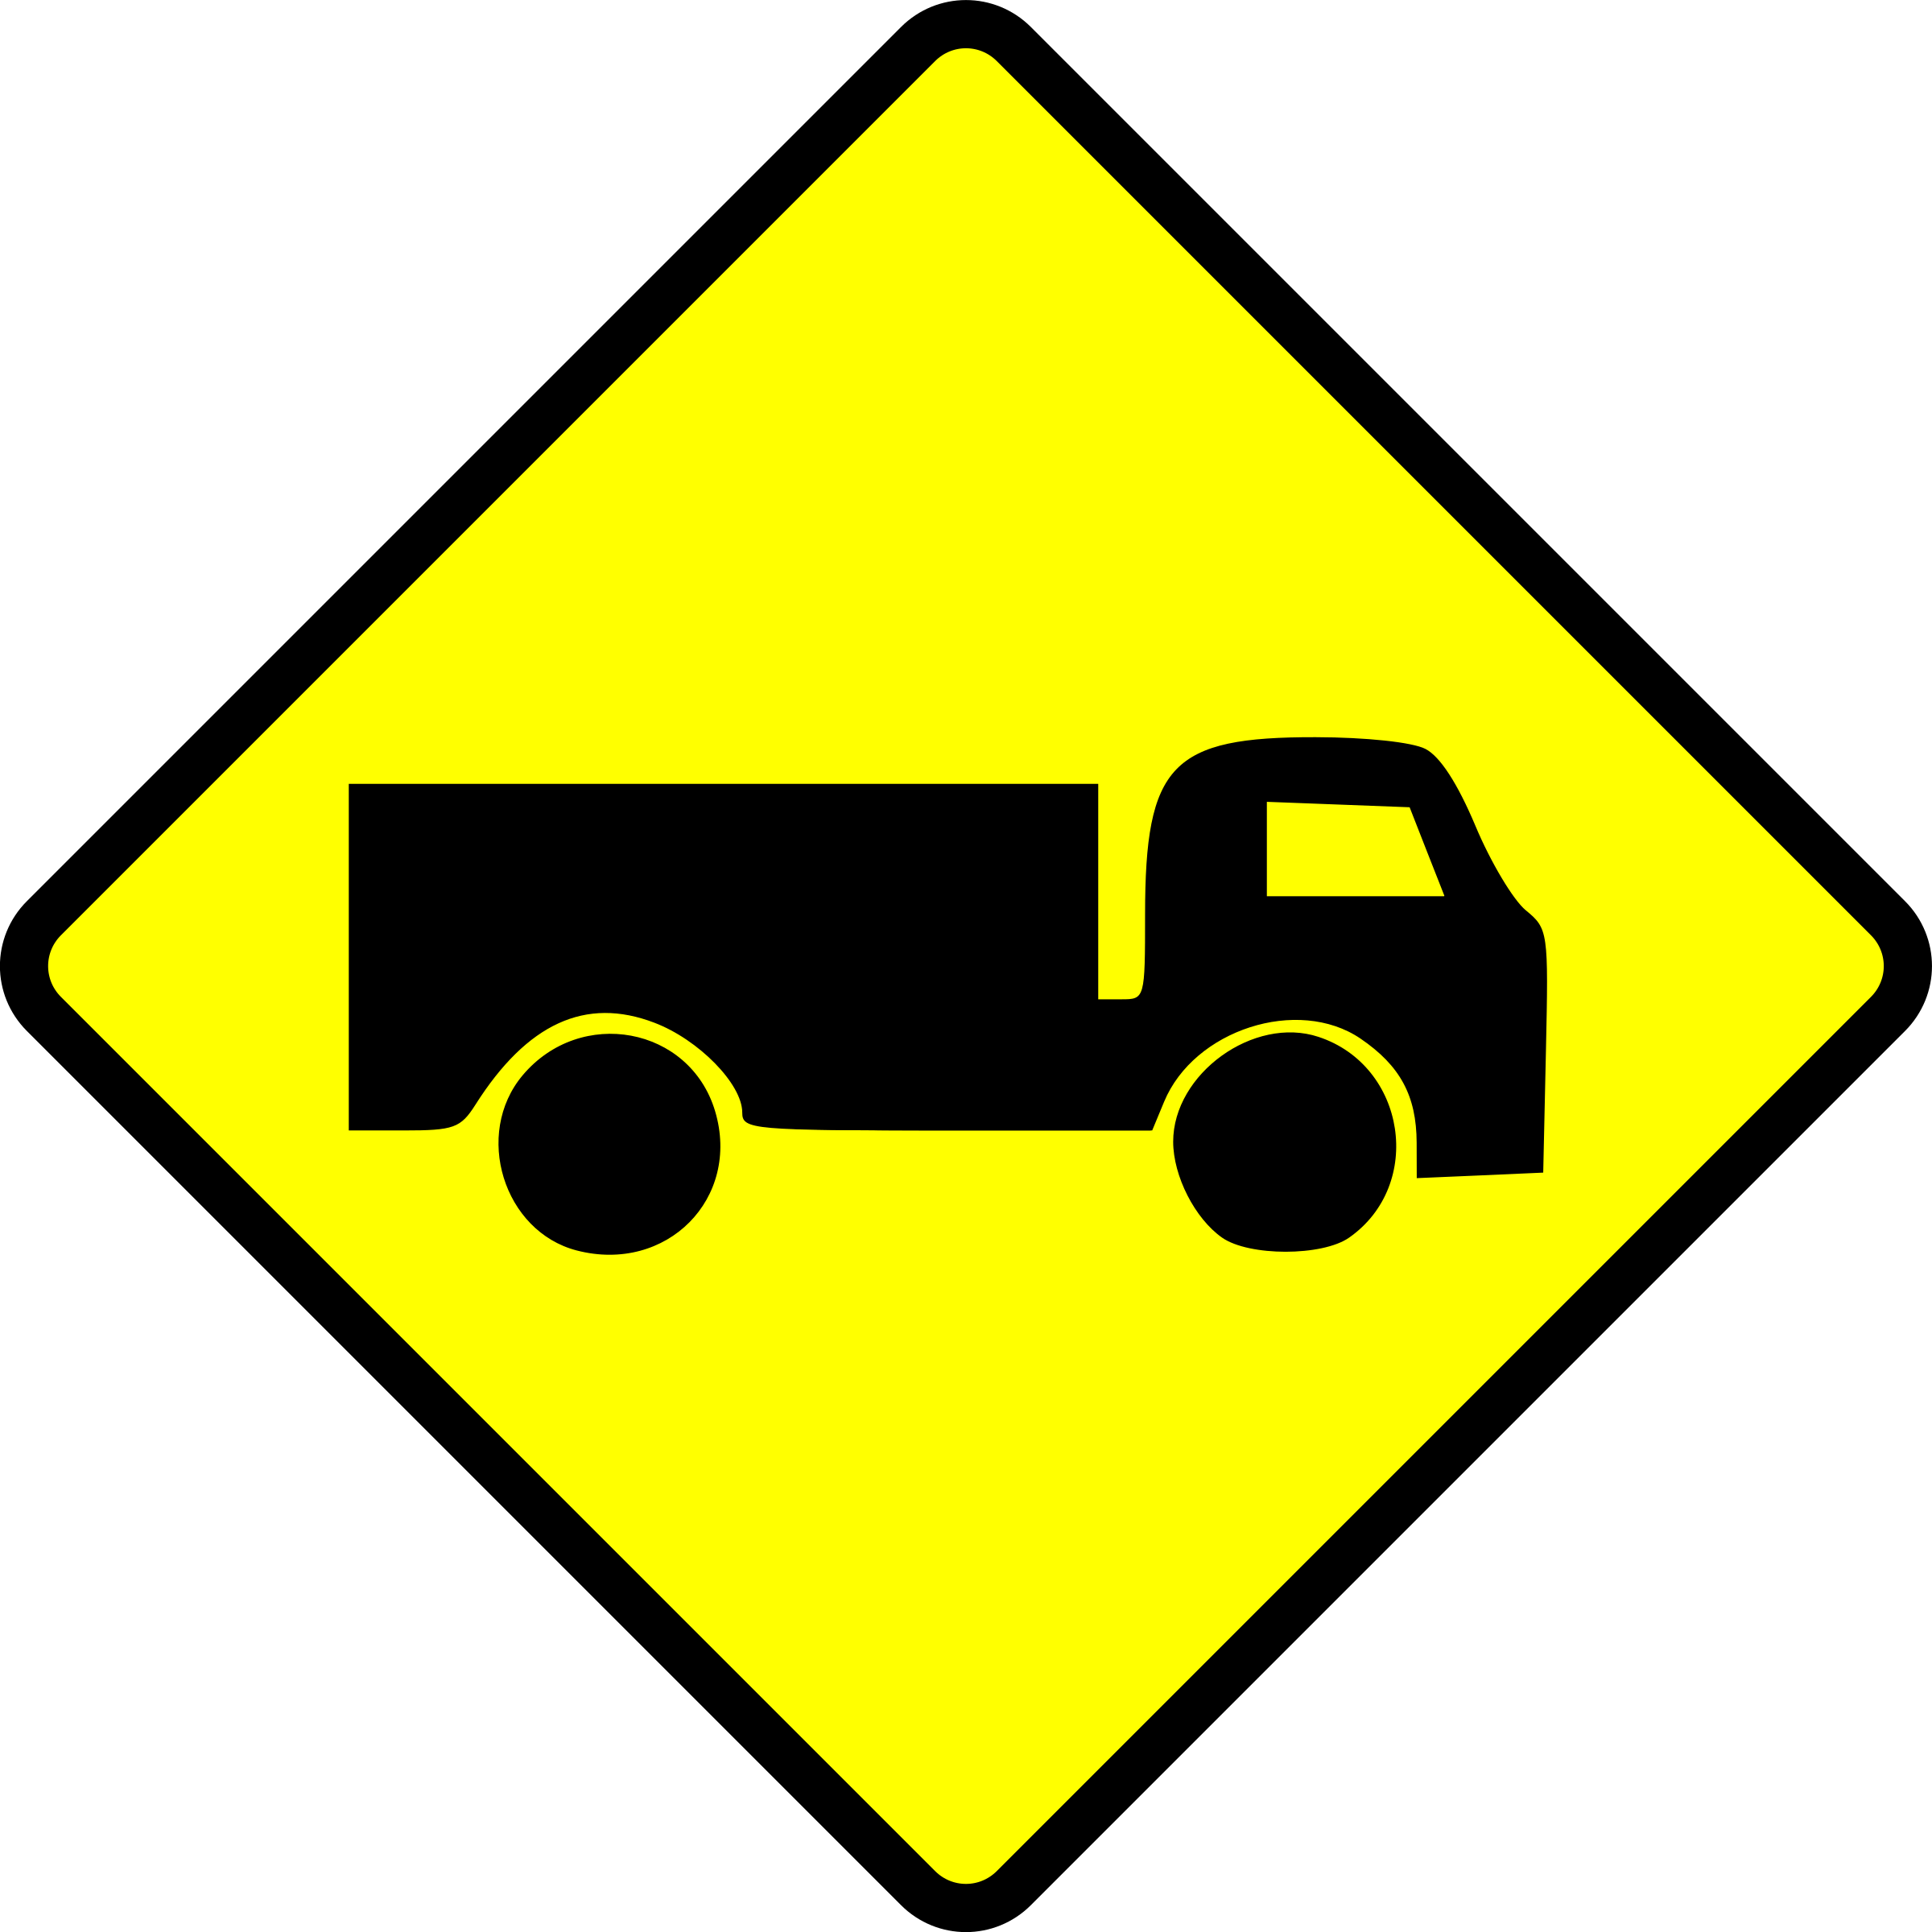 caution-truck by Leomarc